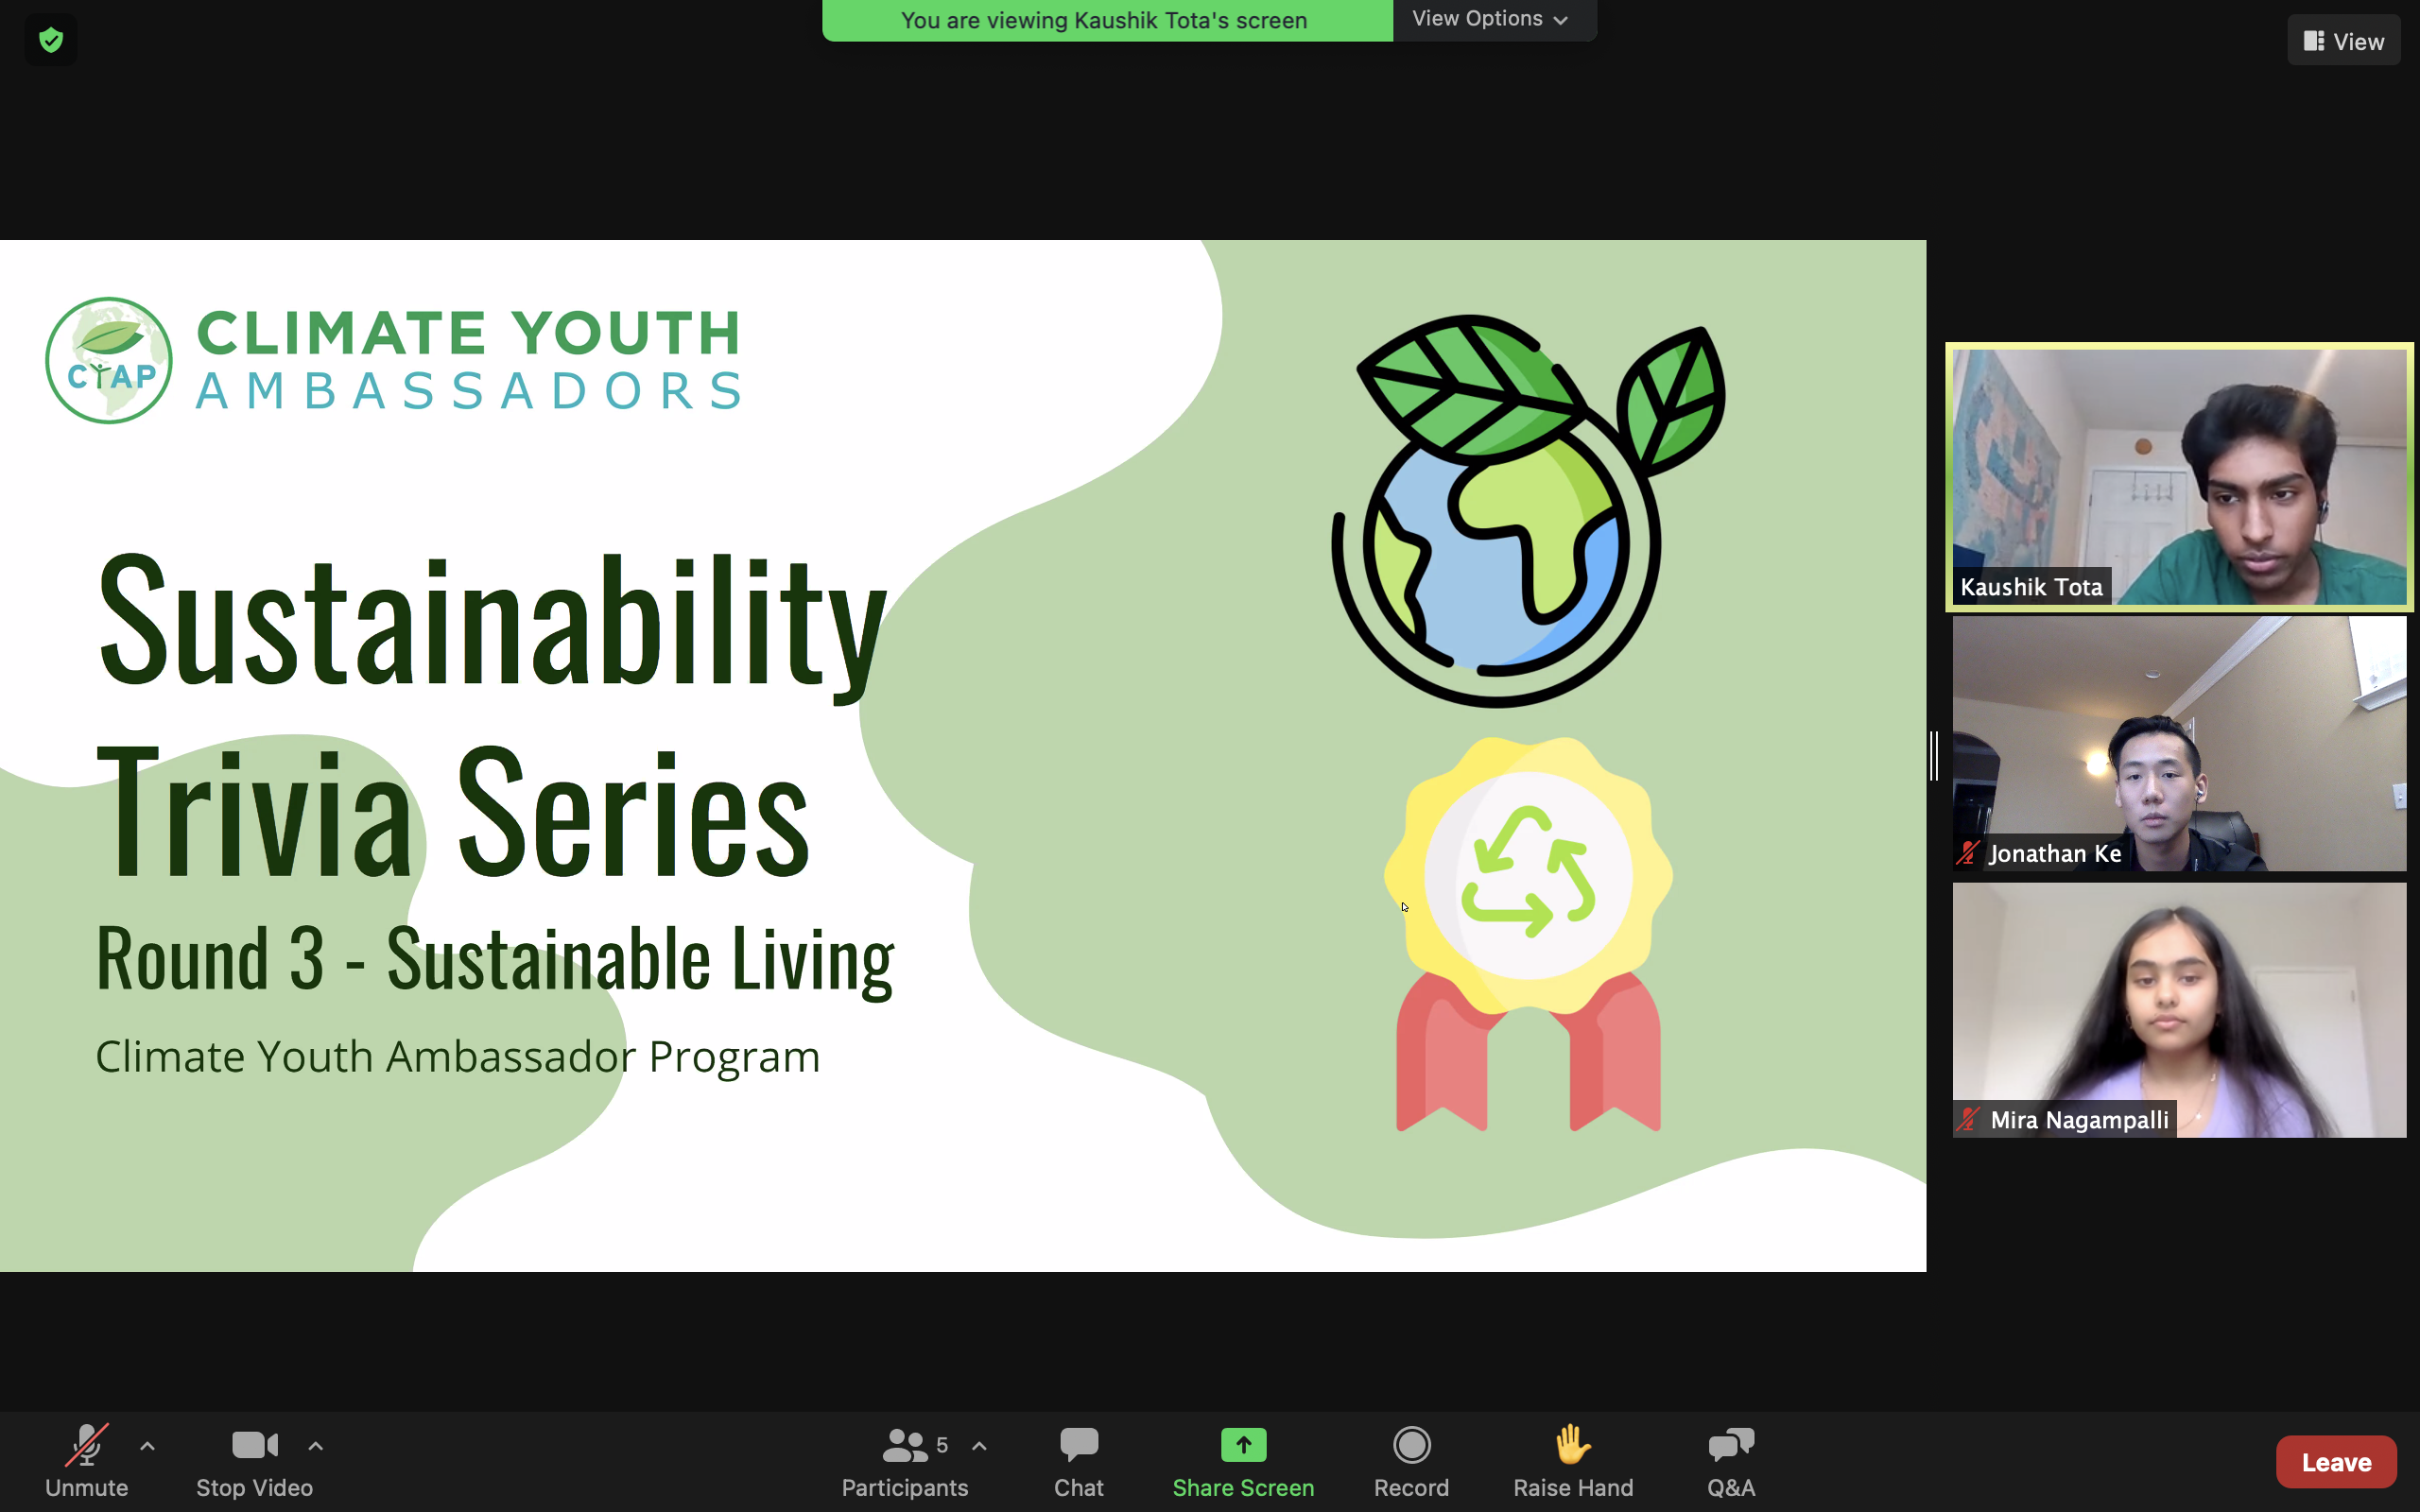 Sustainability Trivia Series Round 3